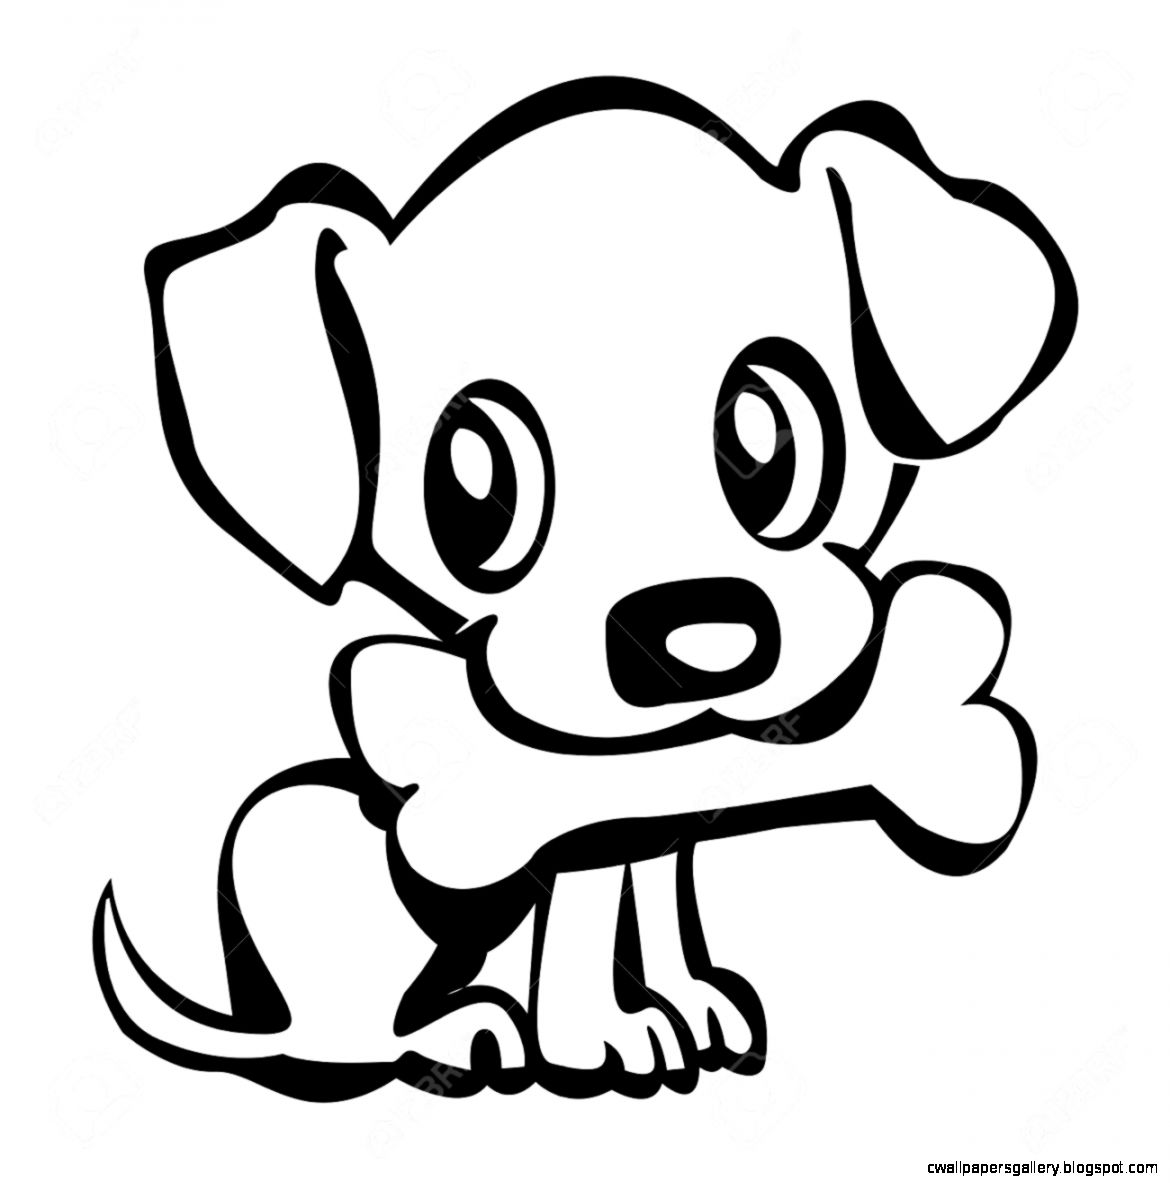 Cute Dog Face Drawing Picture Design   Resimkoy